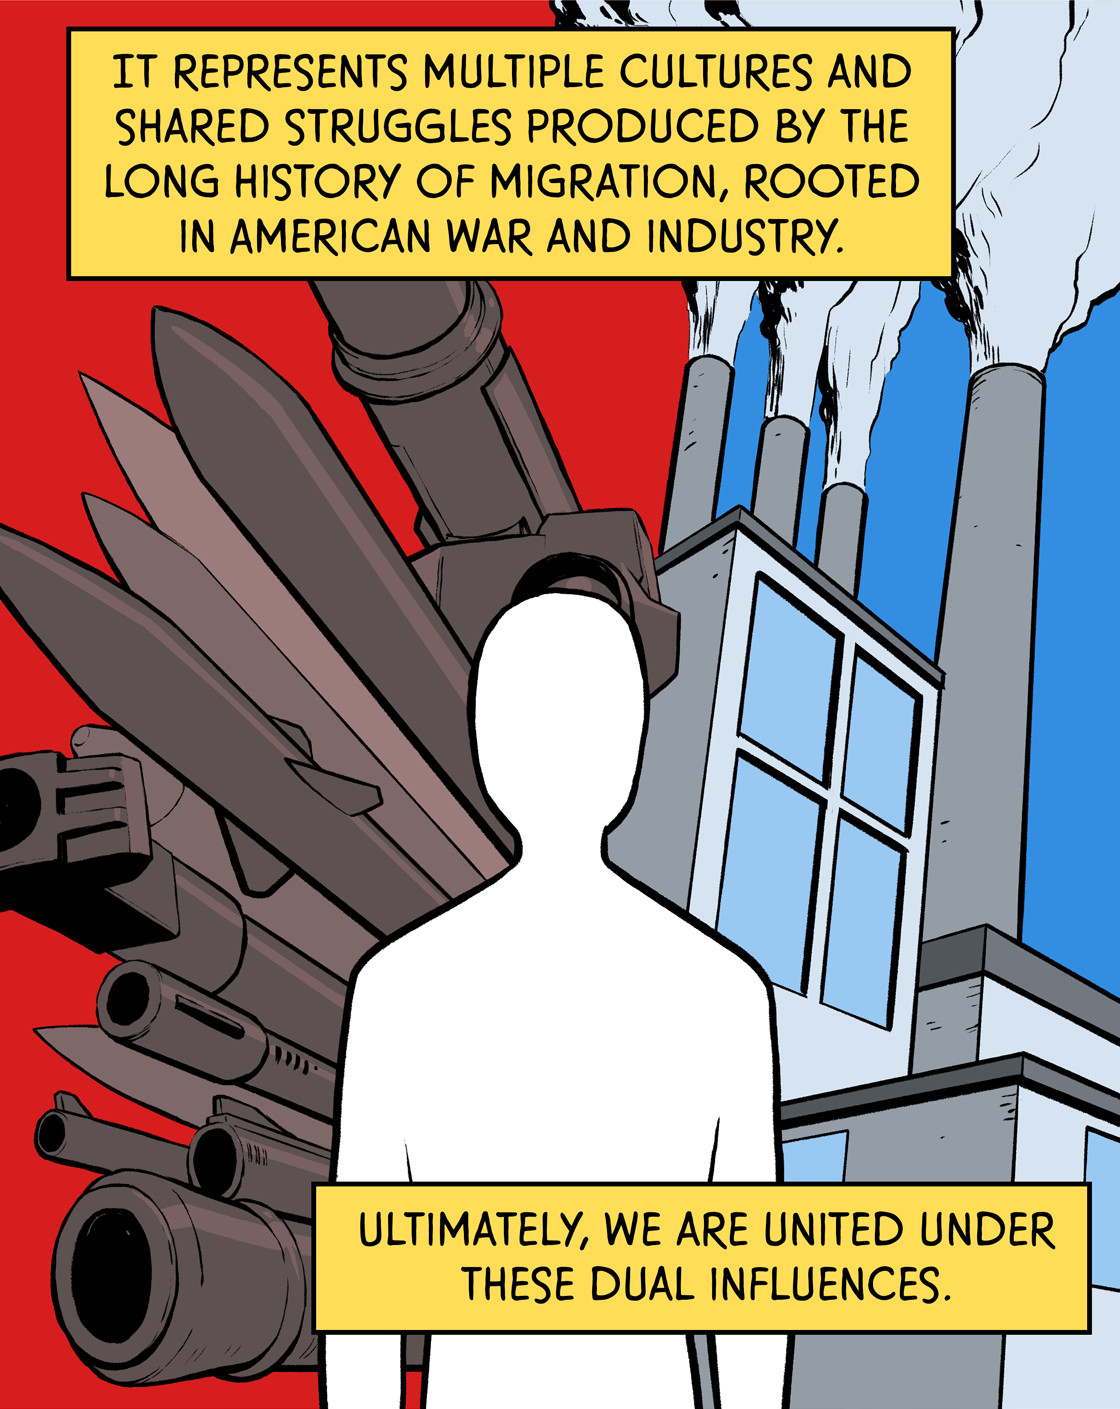 It represents multiple cultures and shared struggled produced by the long history of migration, rooted in American war and industry. Ultimately, we are united under these dual influences.